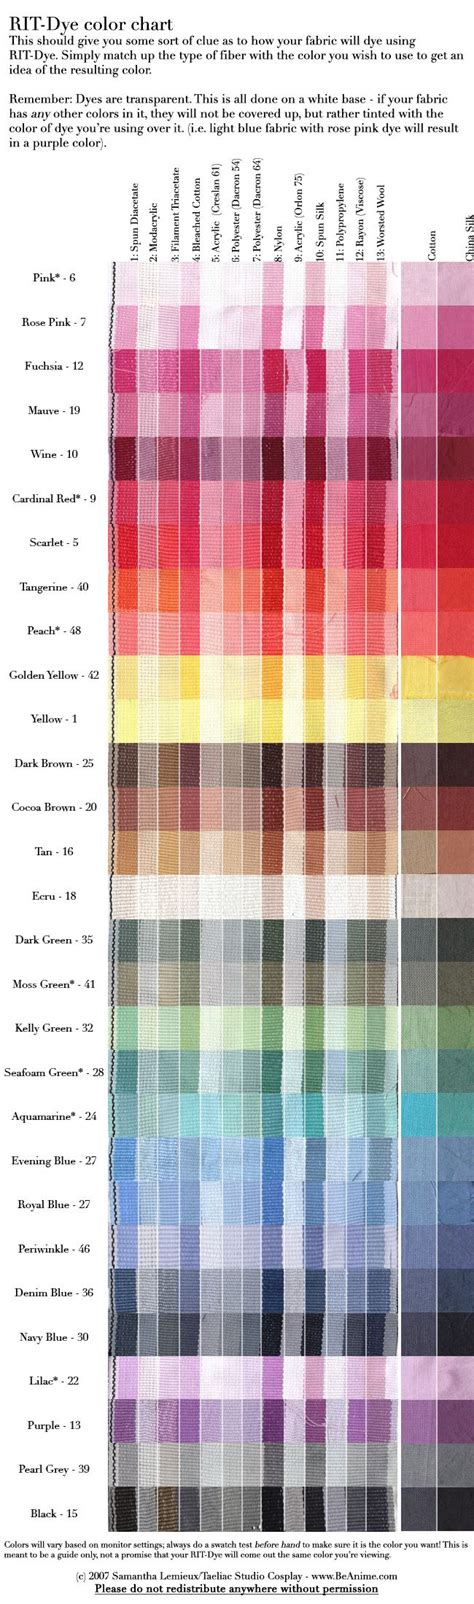 rit colors rit dye color chart lists the different rit colors and